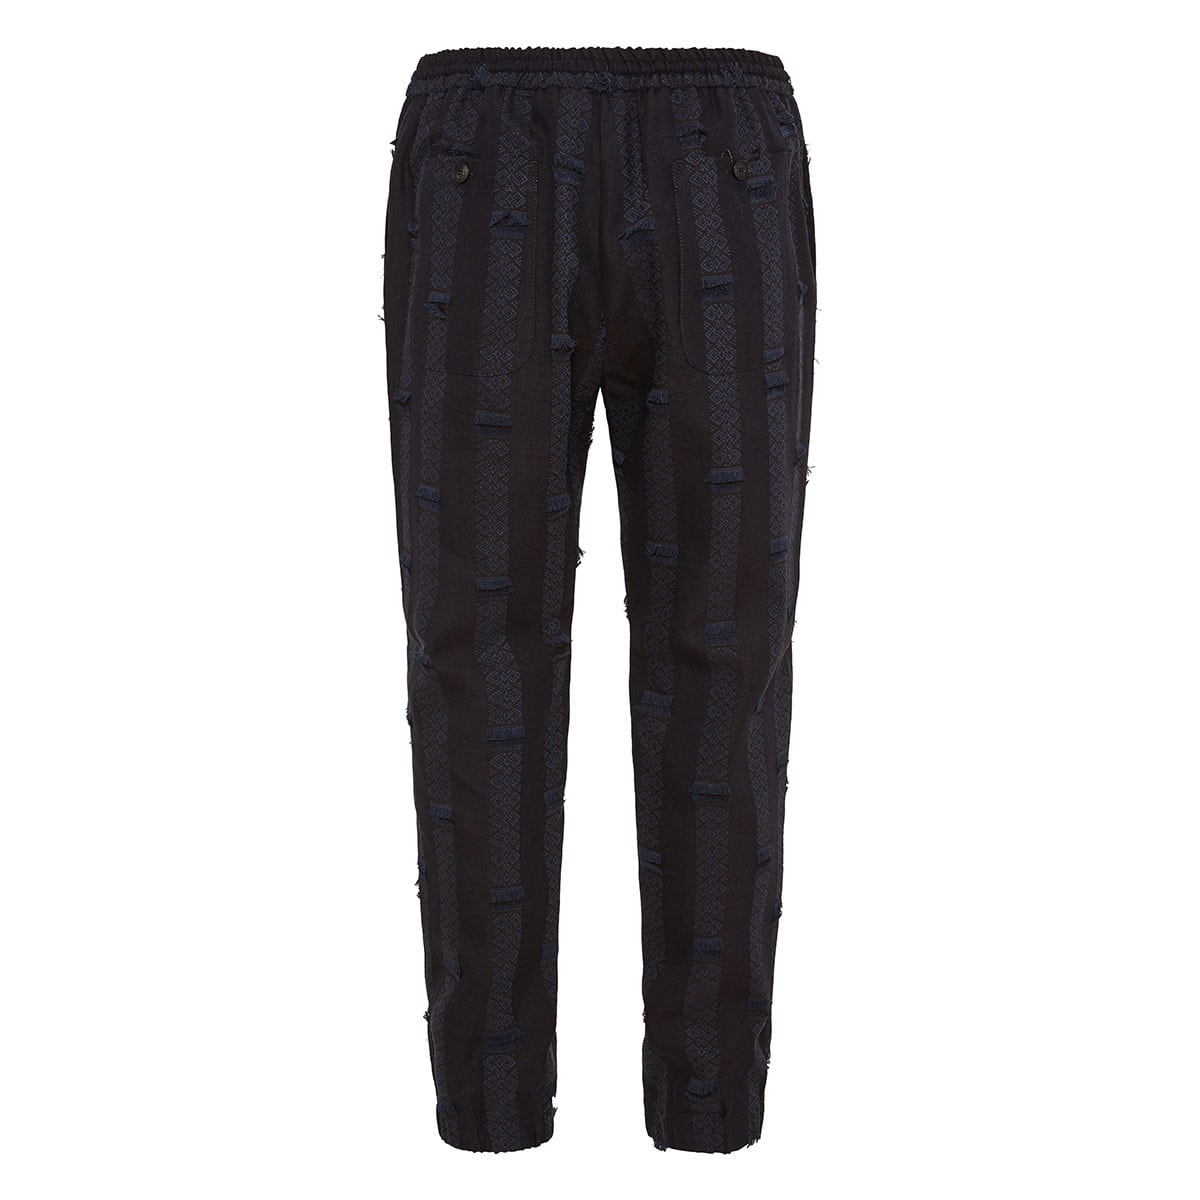 Embroidered fringed linen trousers